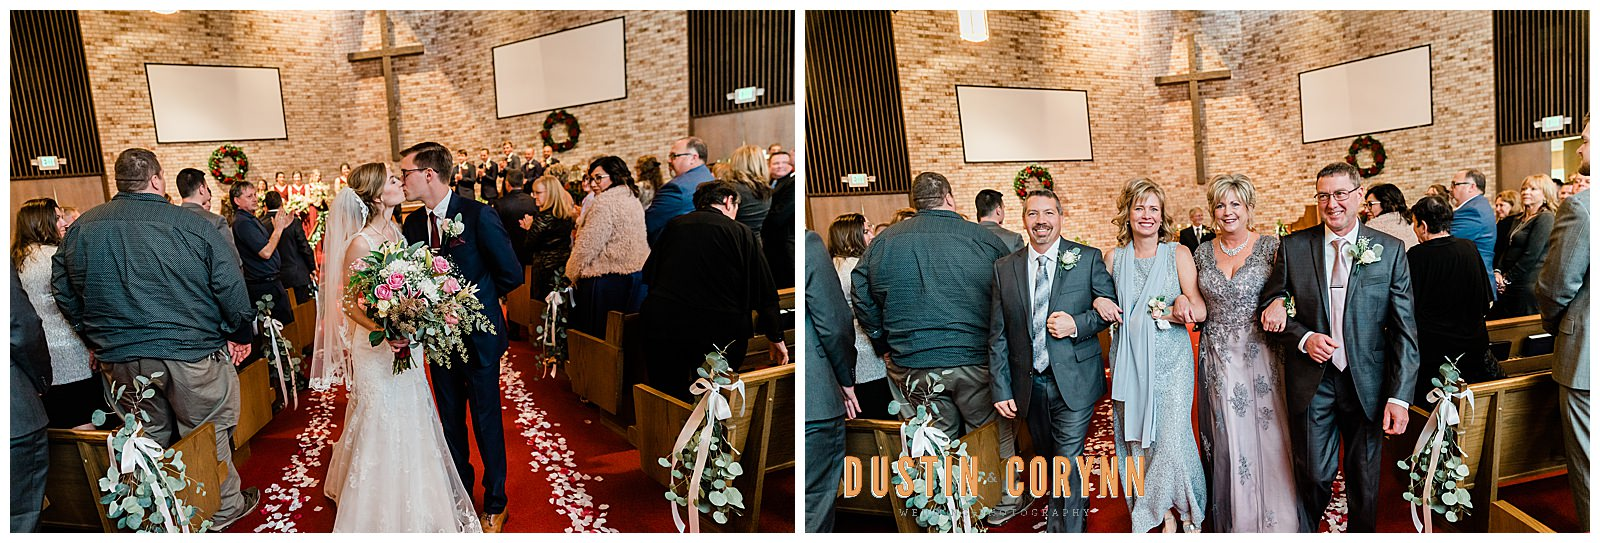 Fort Wayne Winter Wedding